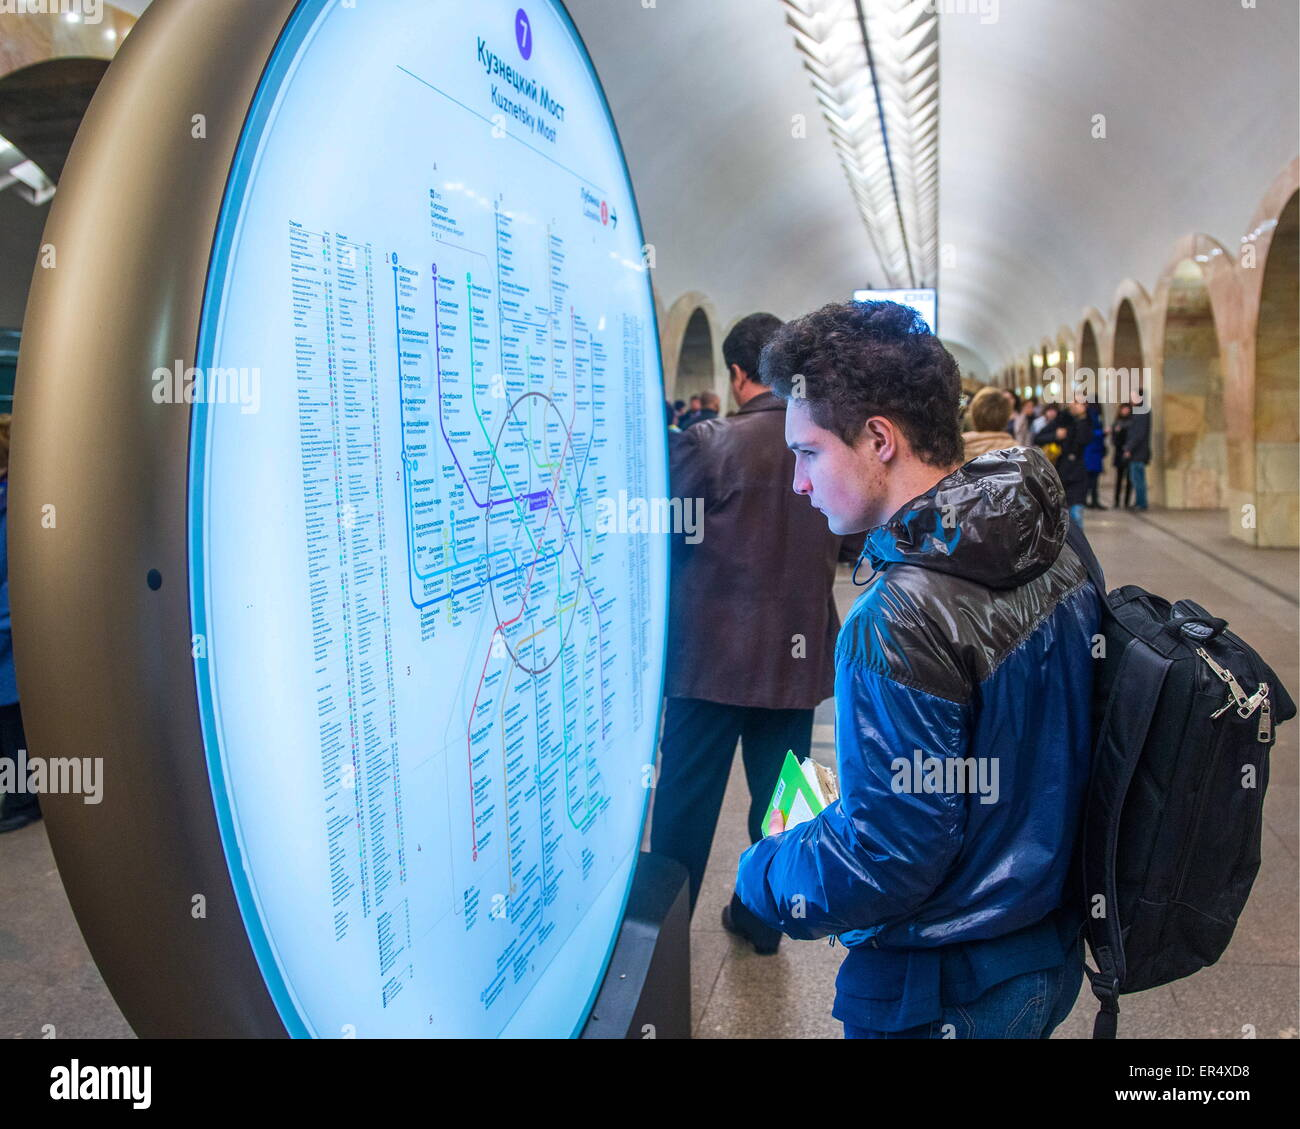 Moscow, Russia. 19th May, 2015. A passenger looking at a Moscow Metro map at Kuznetsky Most metro station of the Stock Photo